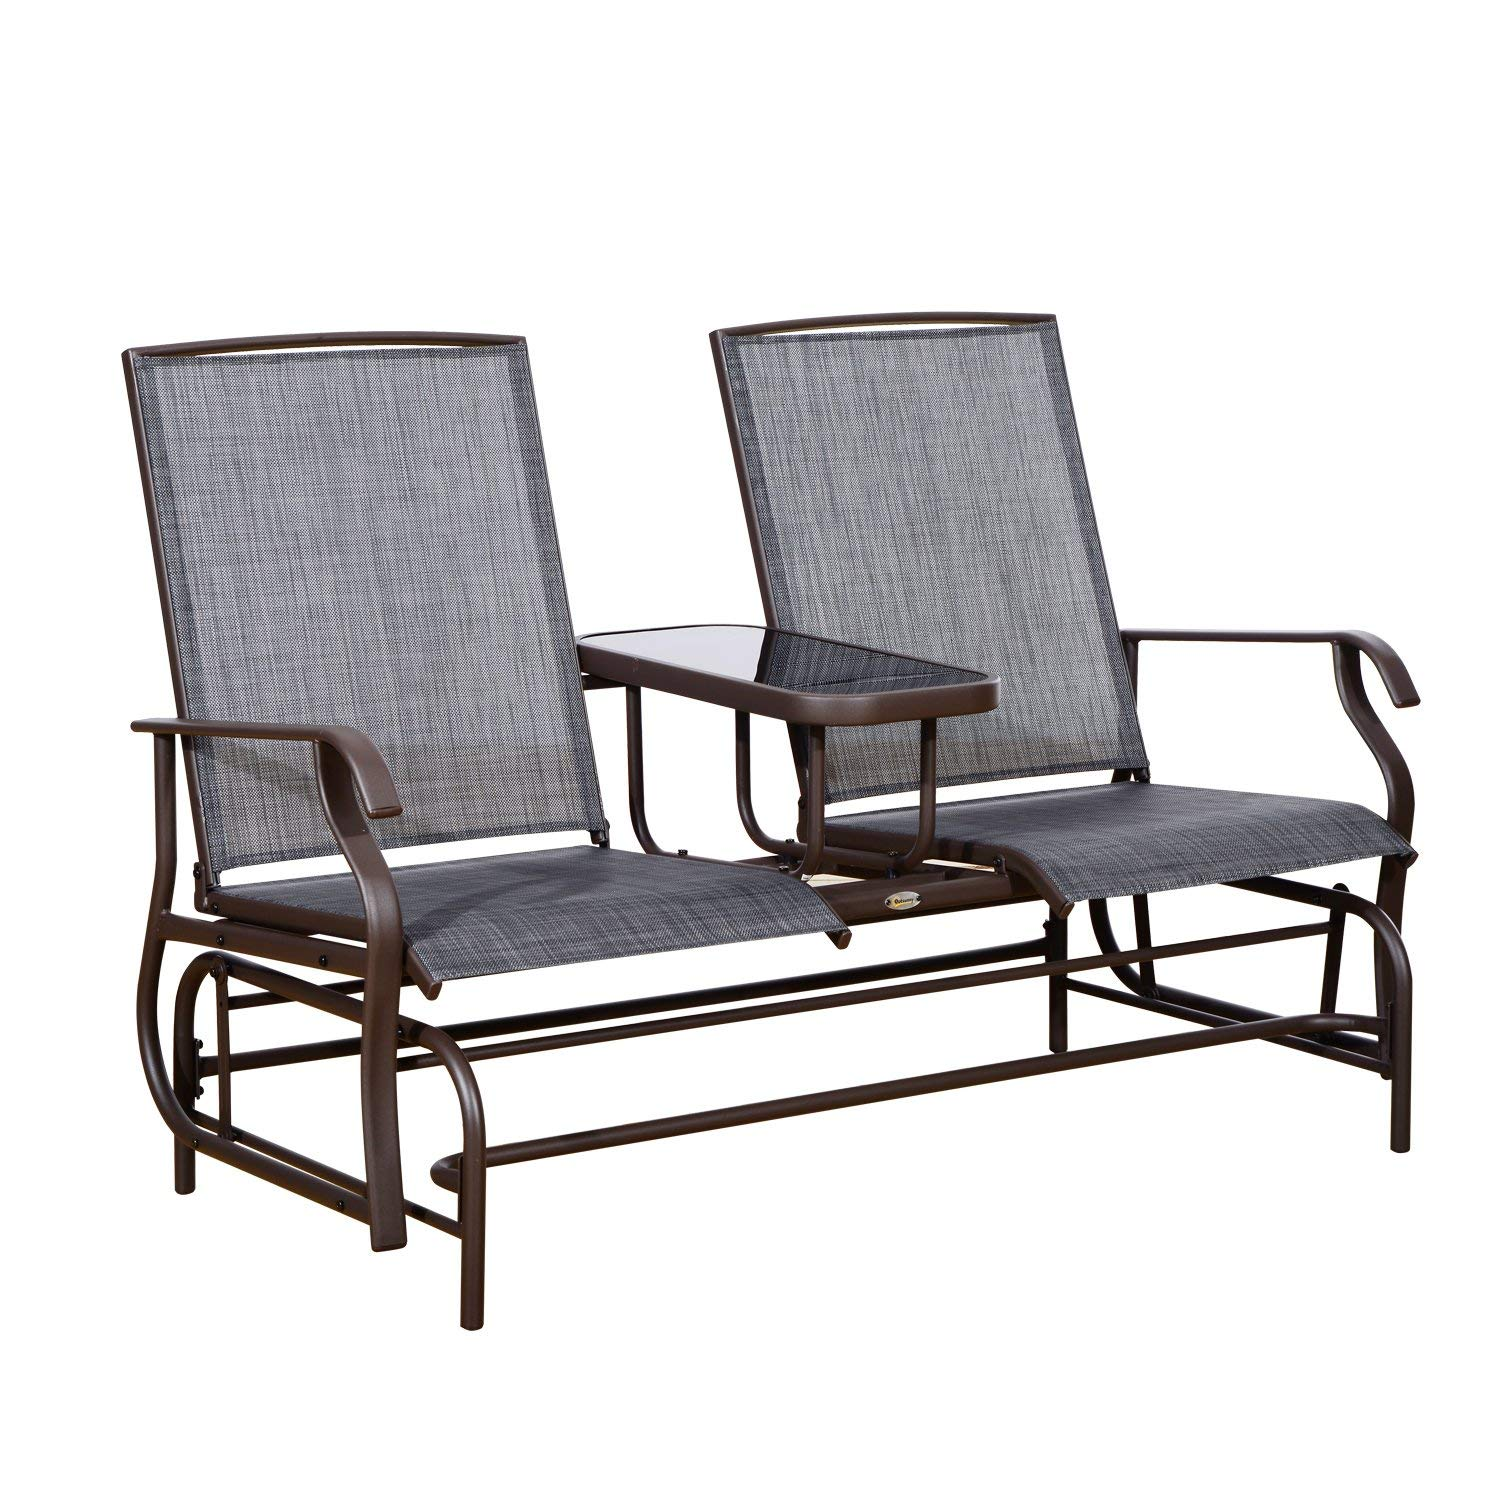 patio glider amazon.com : outsunny 2 person outdoor mesh fabric patio double glider FKBXTMX